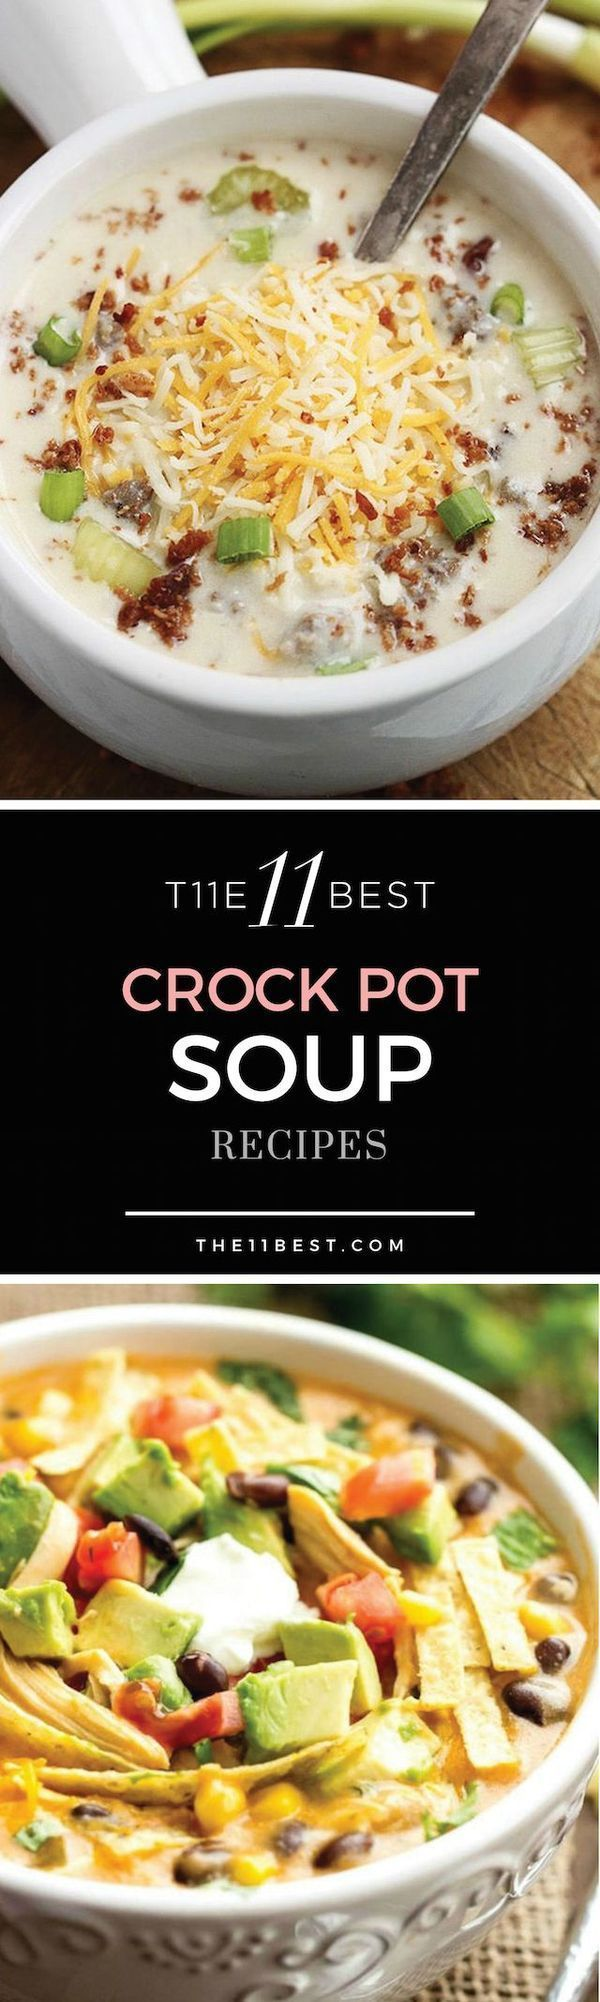 The 11 Best Crock Pot Soup Recipes | Fantastic ideas for quick and delicious fall dinners.